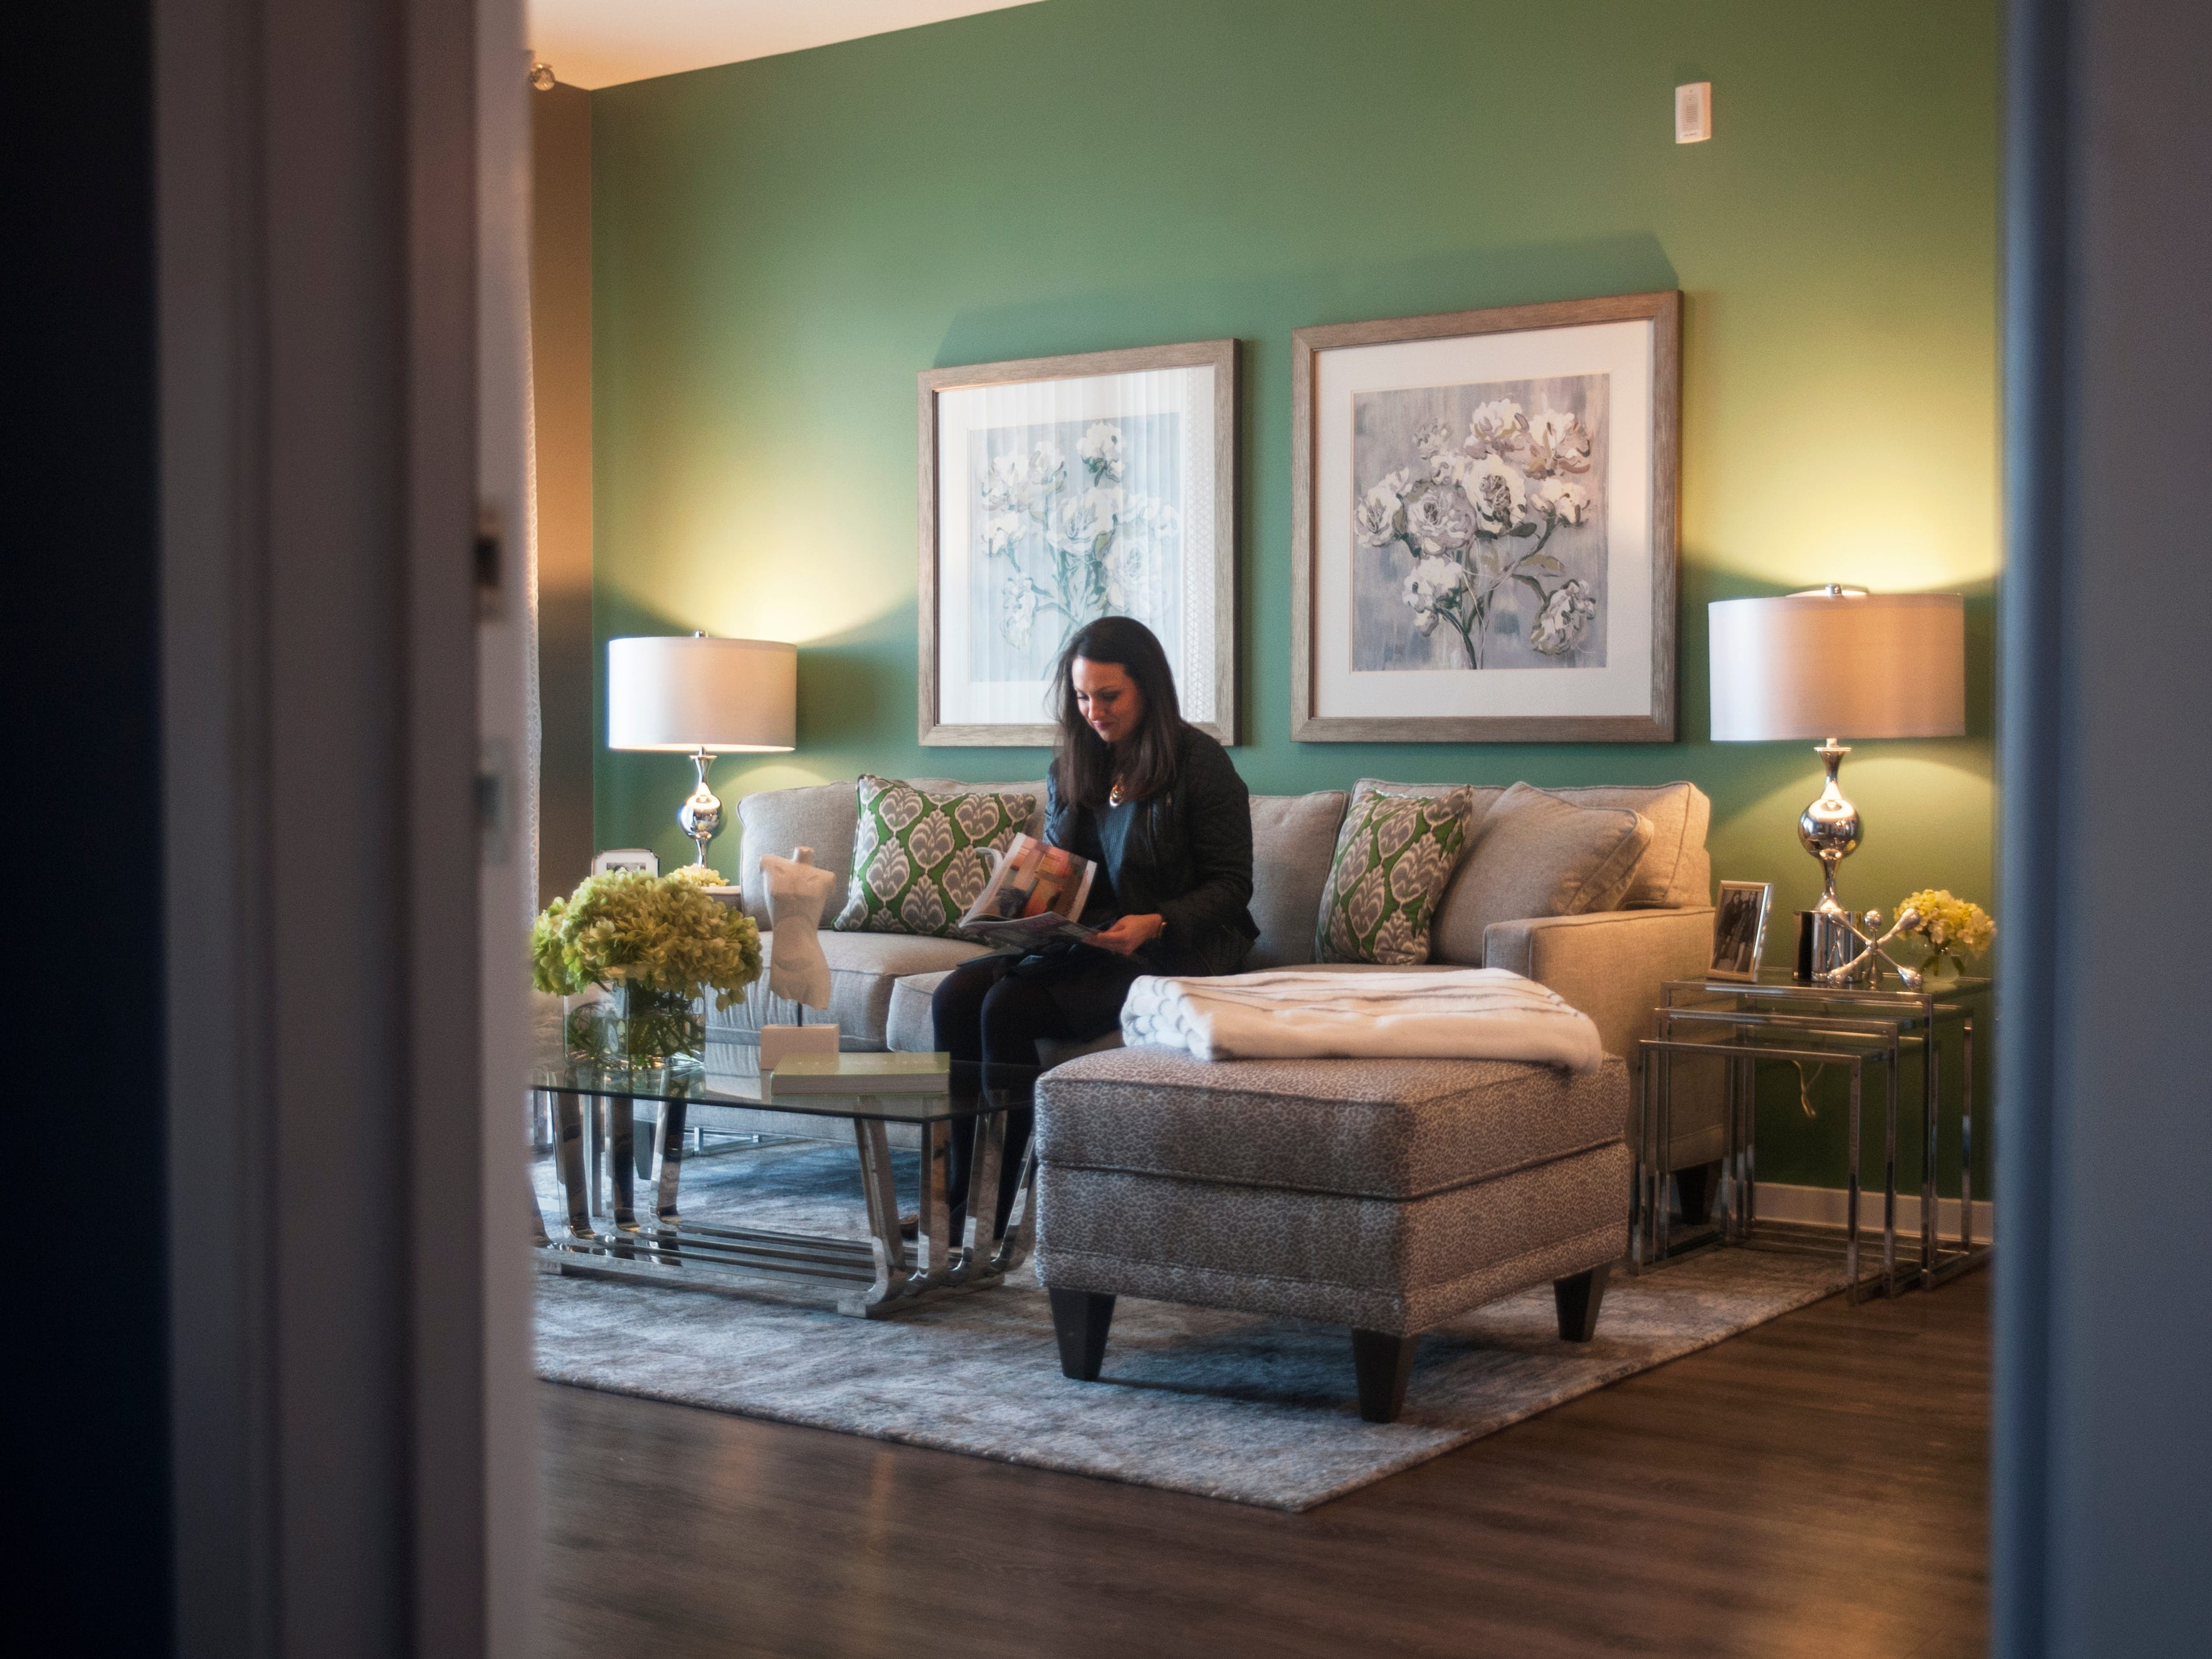 Teresa Sydorko, Director of Communications and Social Media for Delco Development, sits in the living room of a model apartment at Haddon Point, a large-scale apartment complex located on the former Pennsauken Mart site, that opened Wednesday, November 14, 2018.